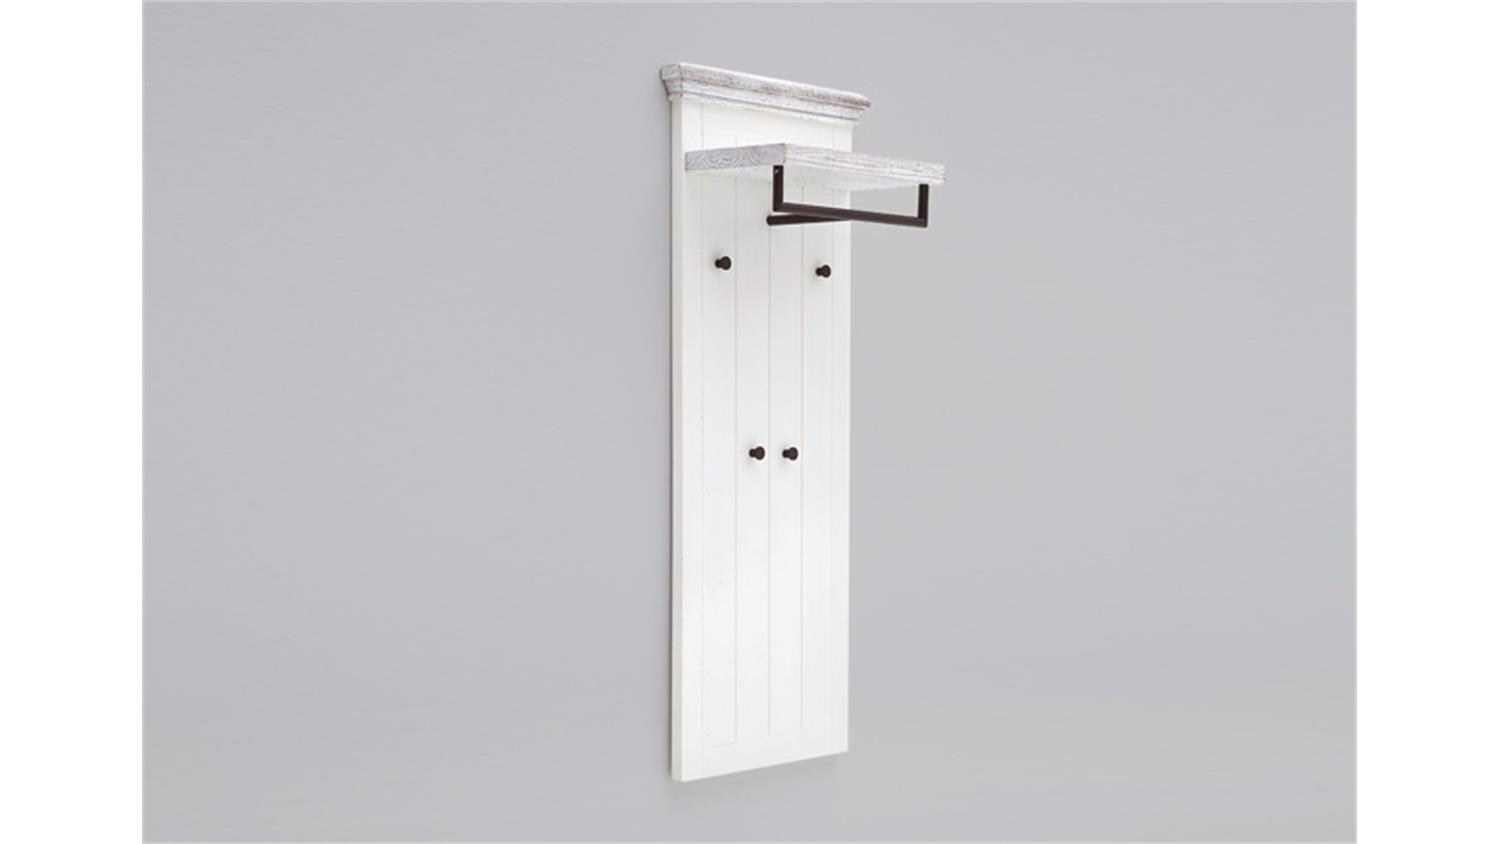 Wandpaneel 1 opus garderobe in kiefer massiv wei vintage for Garderobe wandpaneel